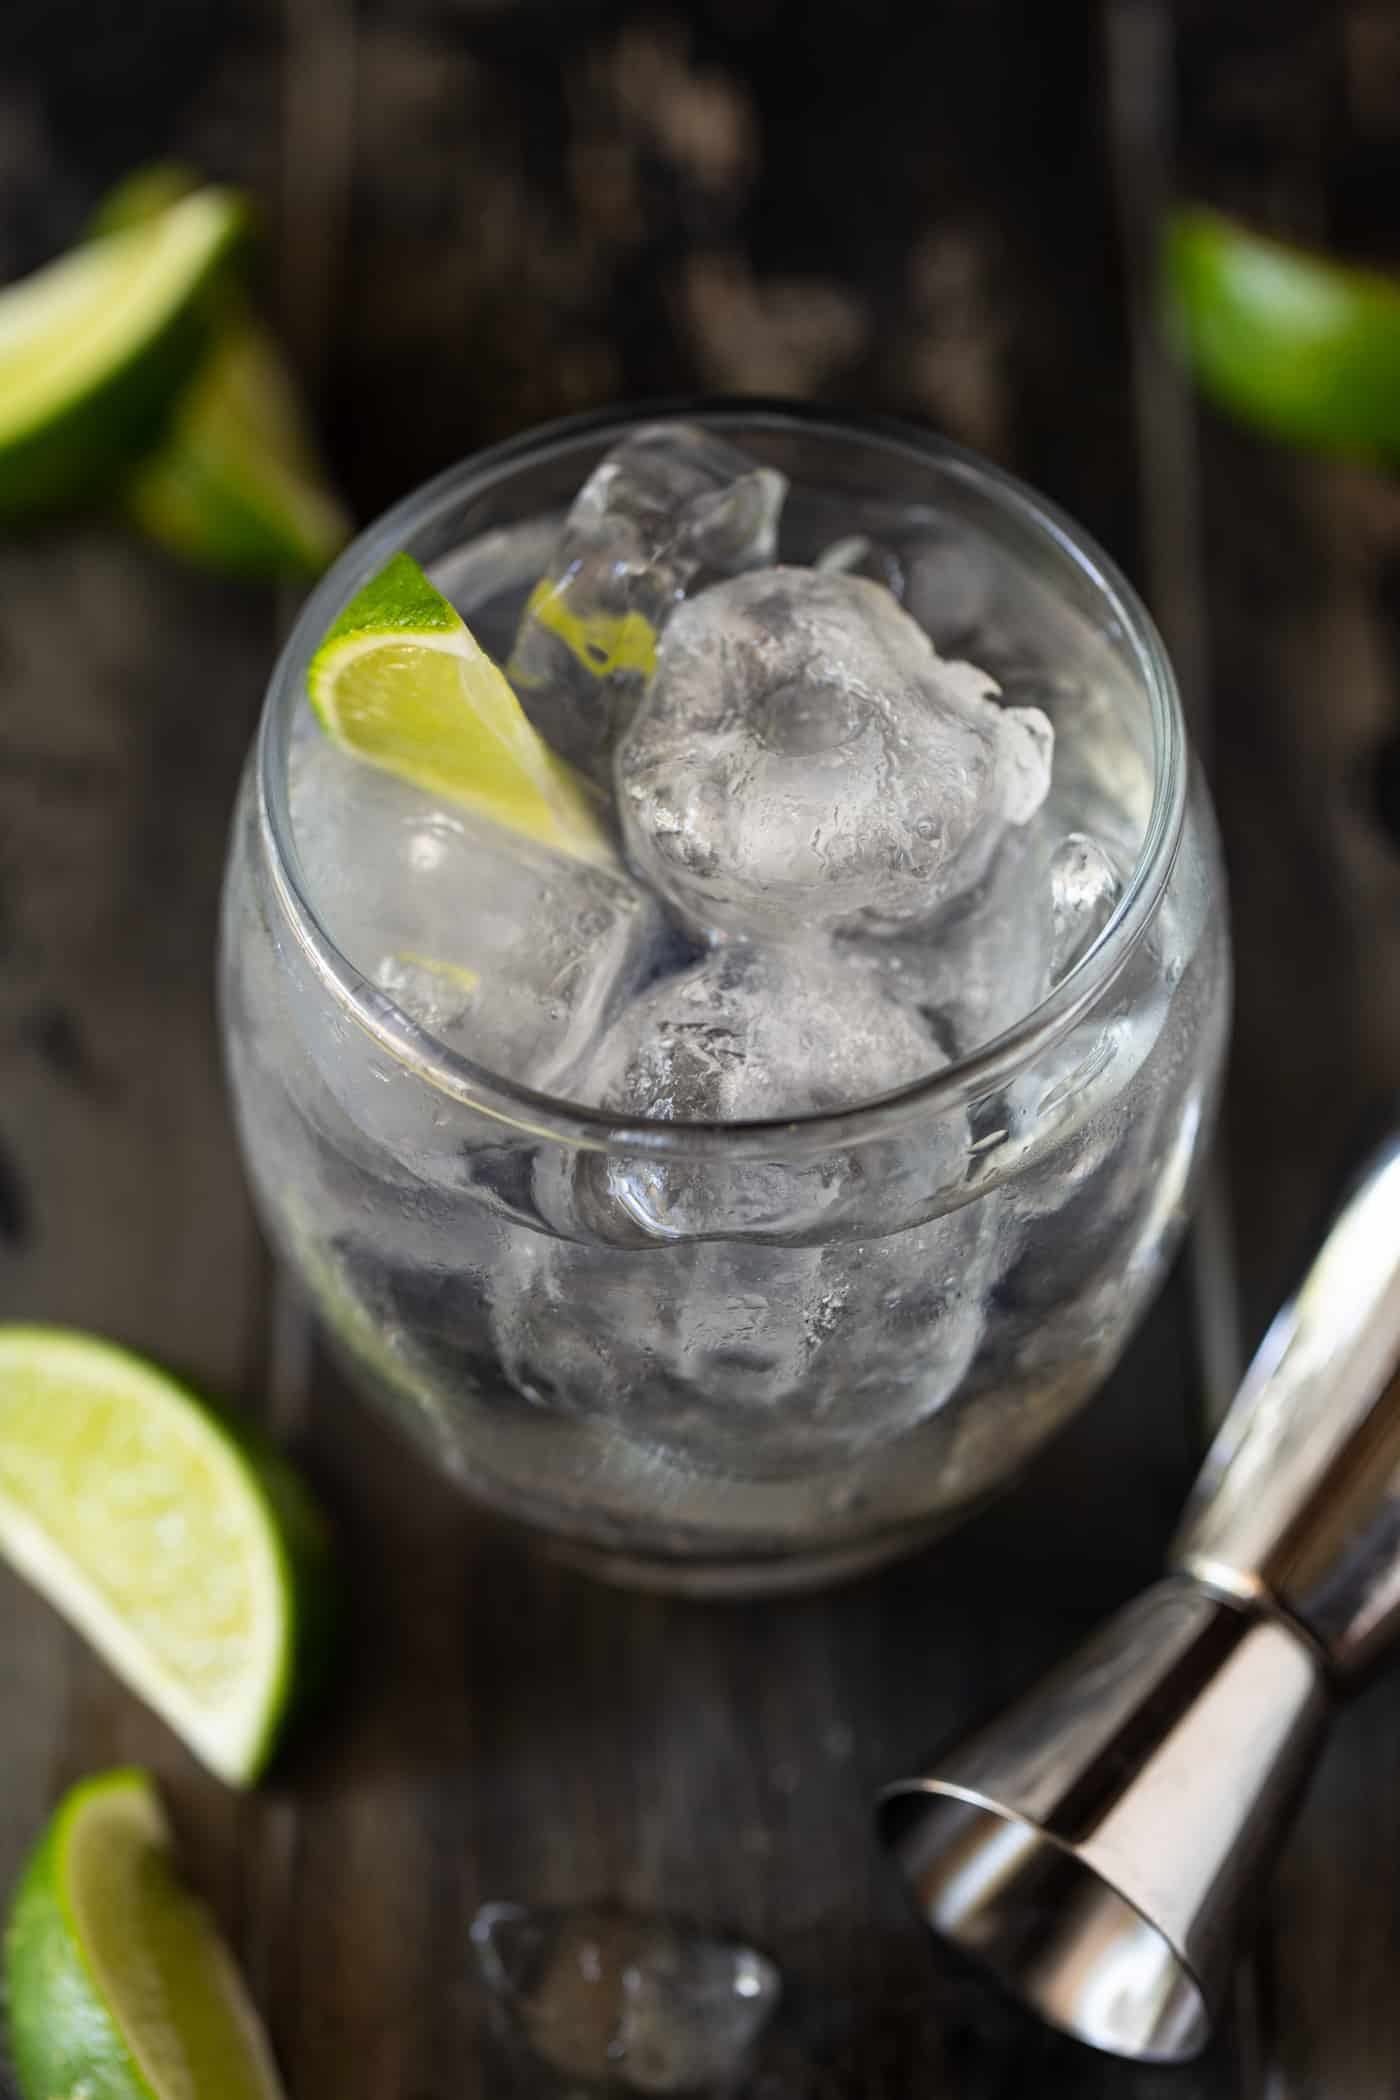 Top down view of a lowball glass filled with ice, gin, elderflower liqueur and tonic water. Garnished with fresh lime wedges.